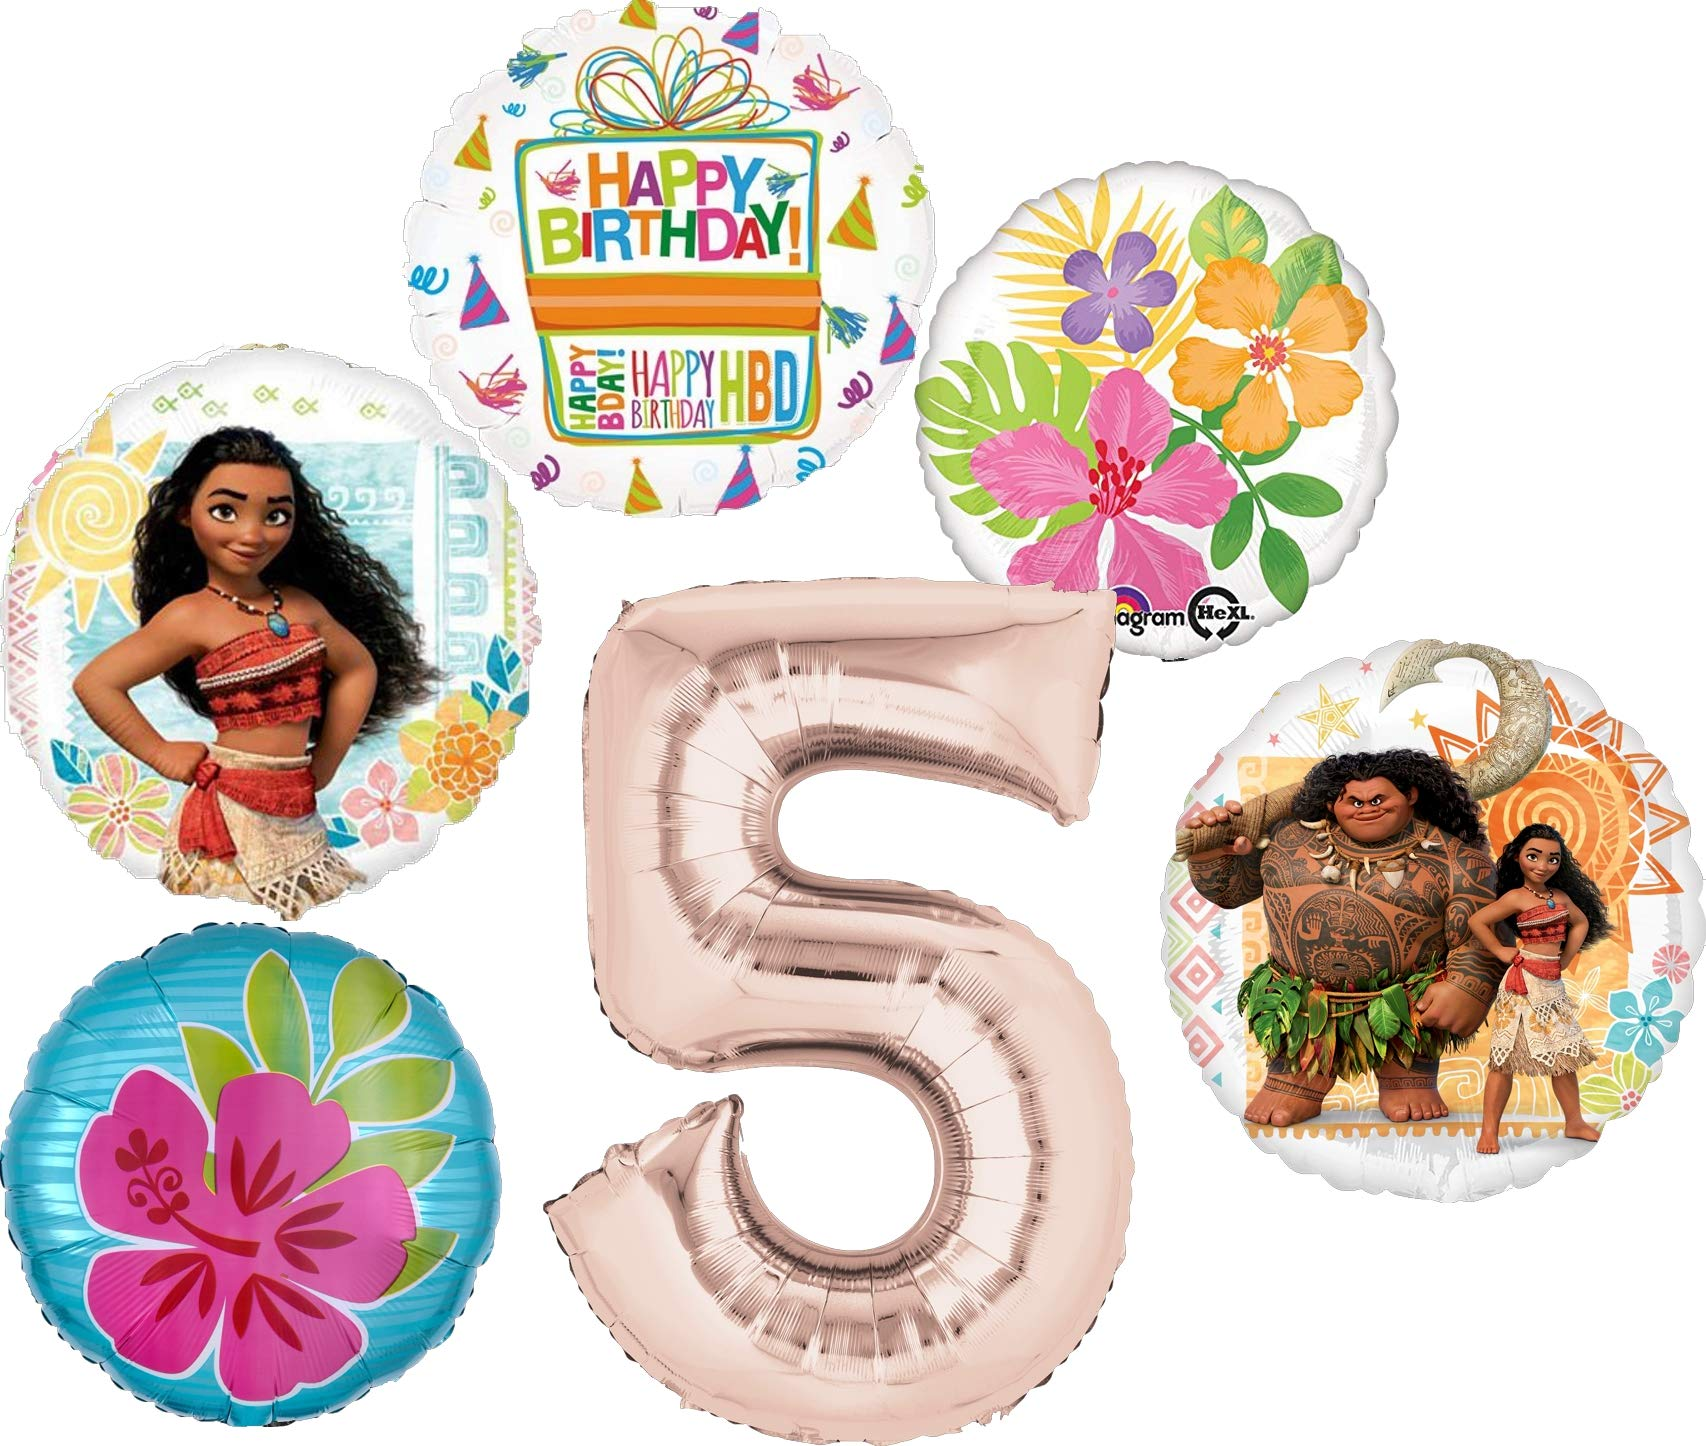 moana candle holder party supplies and decorations moana number candle Moana birthday candle moana cake topper